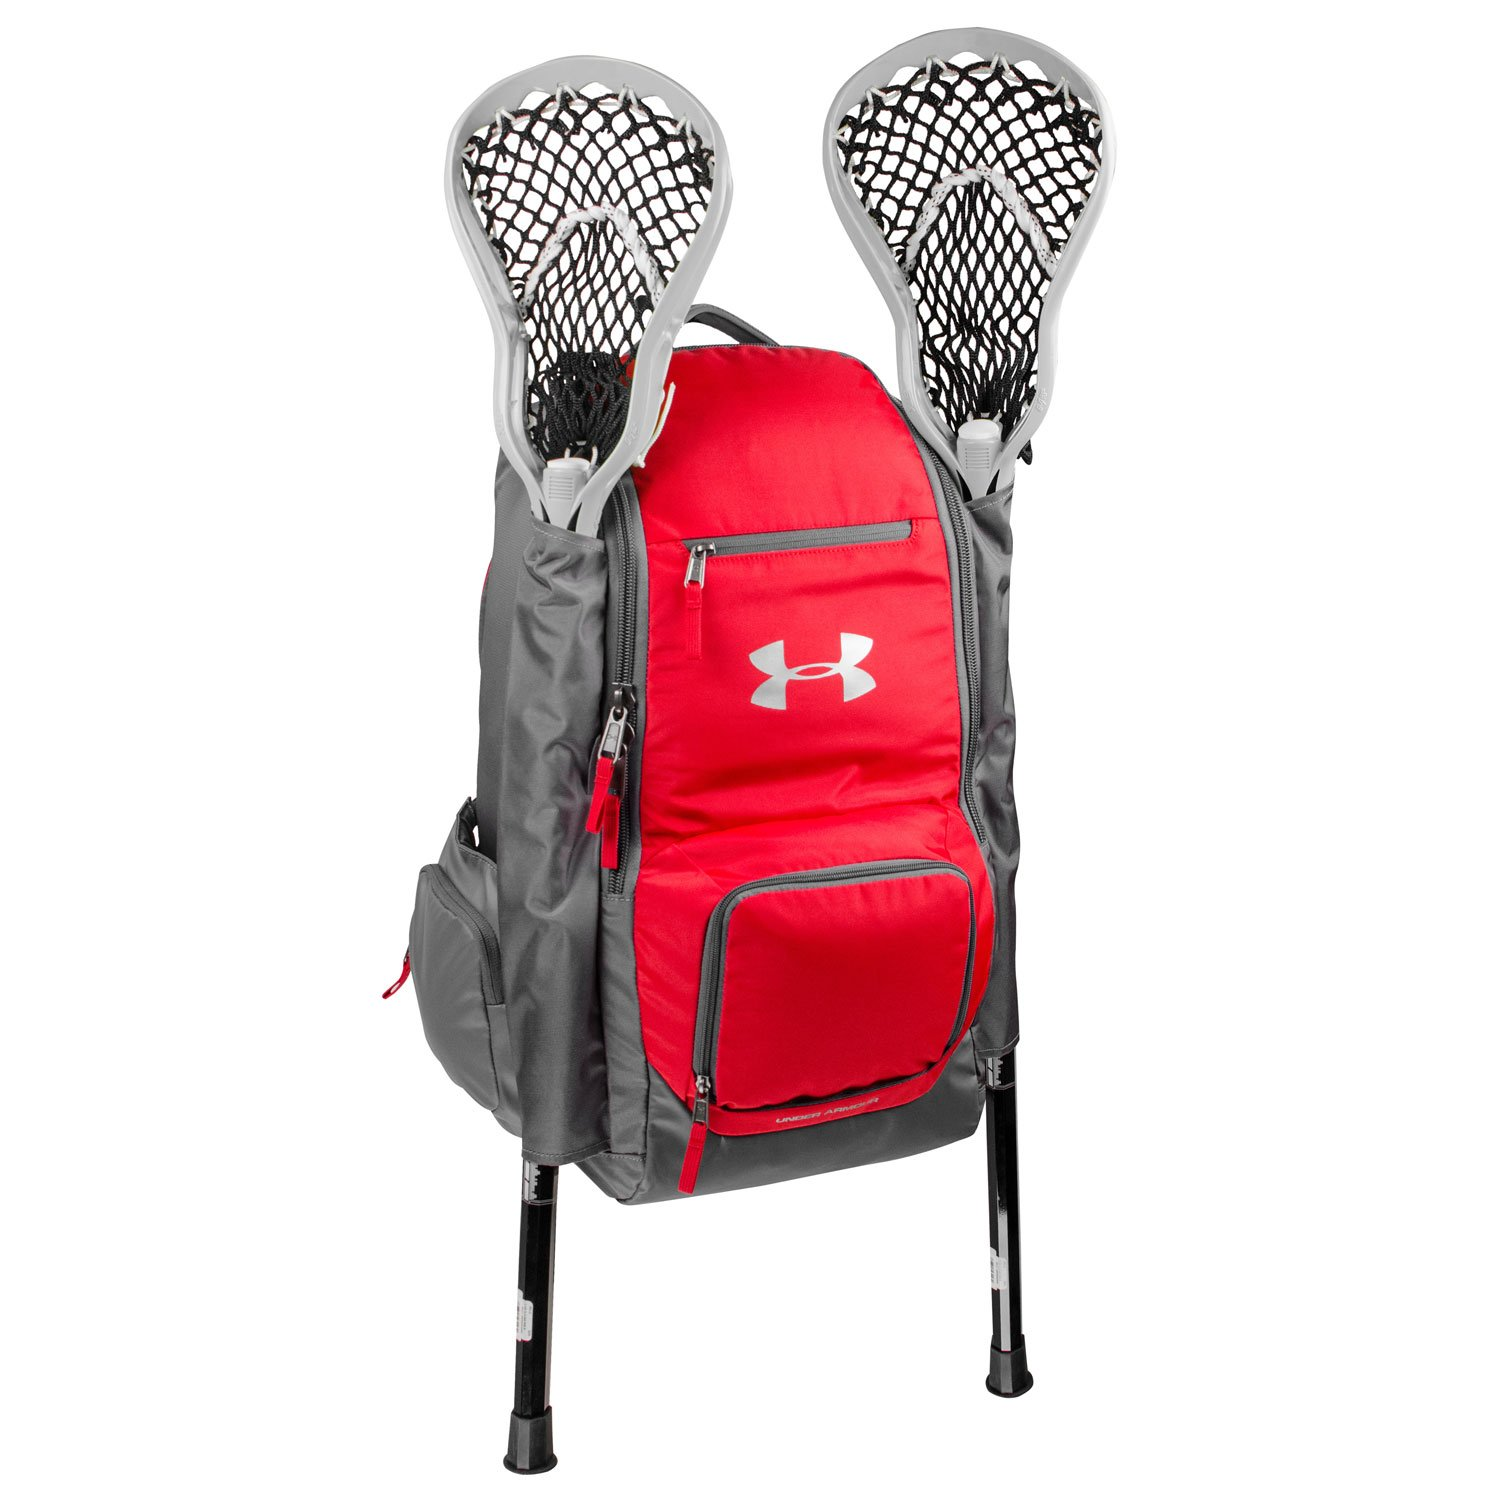 Under Armour UAチームLacrosseバックパック  スカーレット B07DDGB8Y5